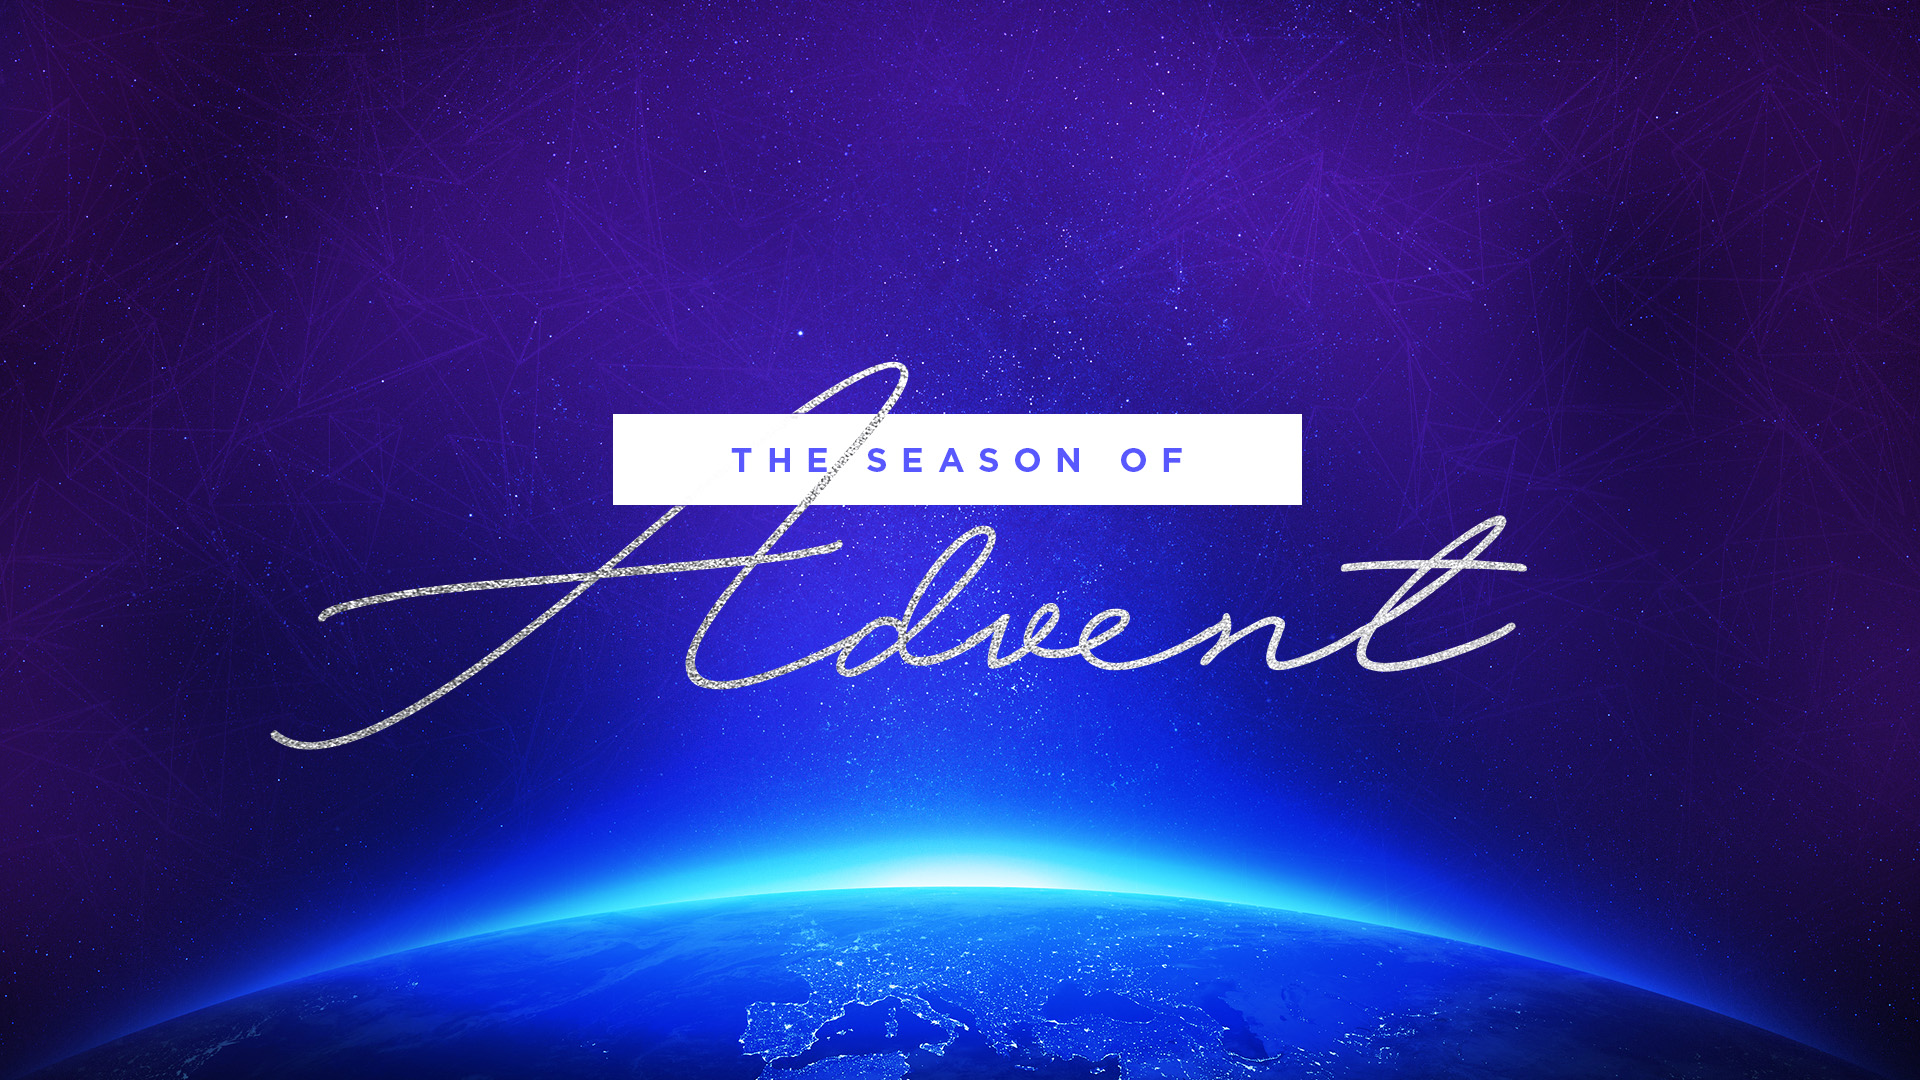 The Season of Advent